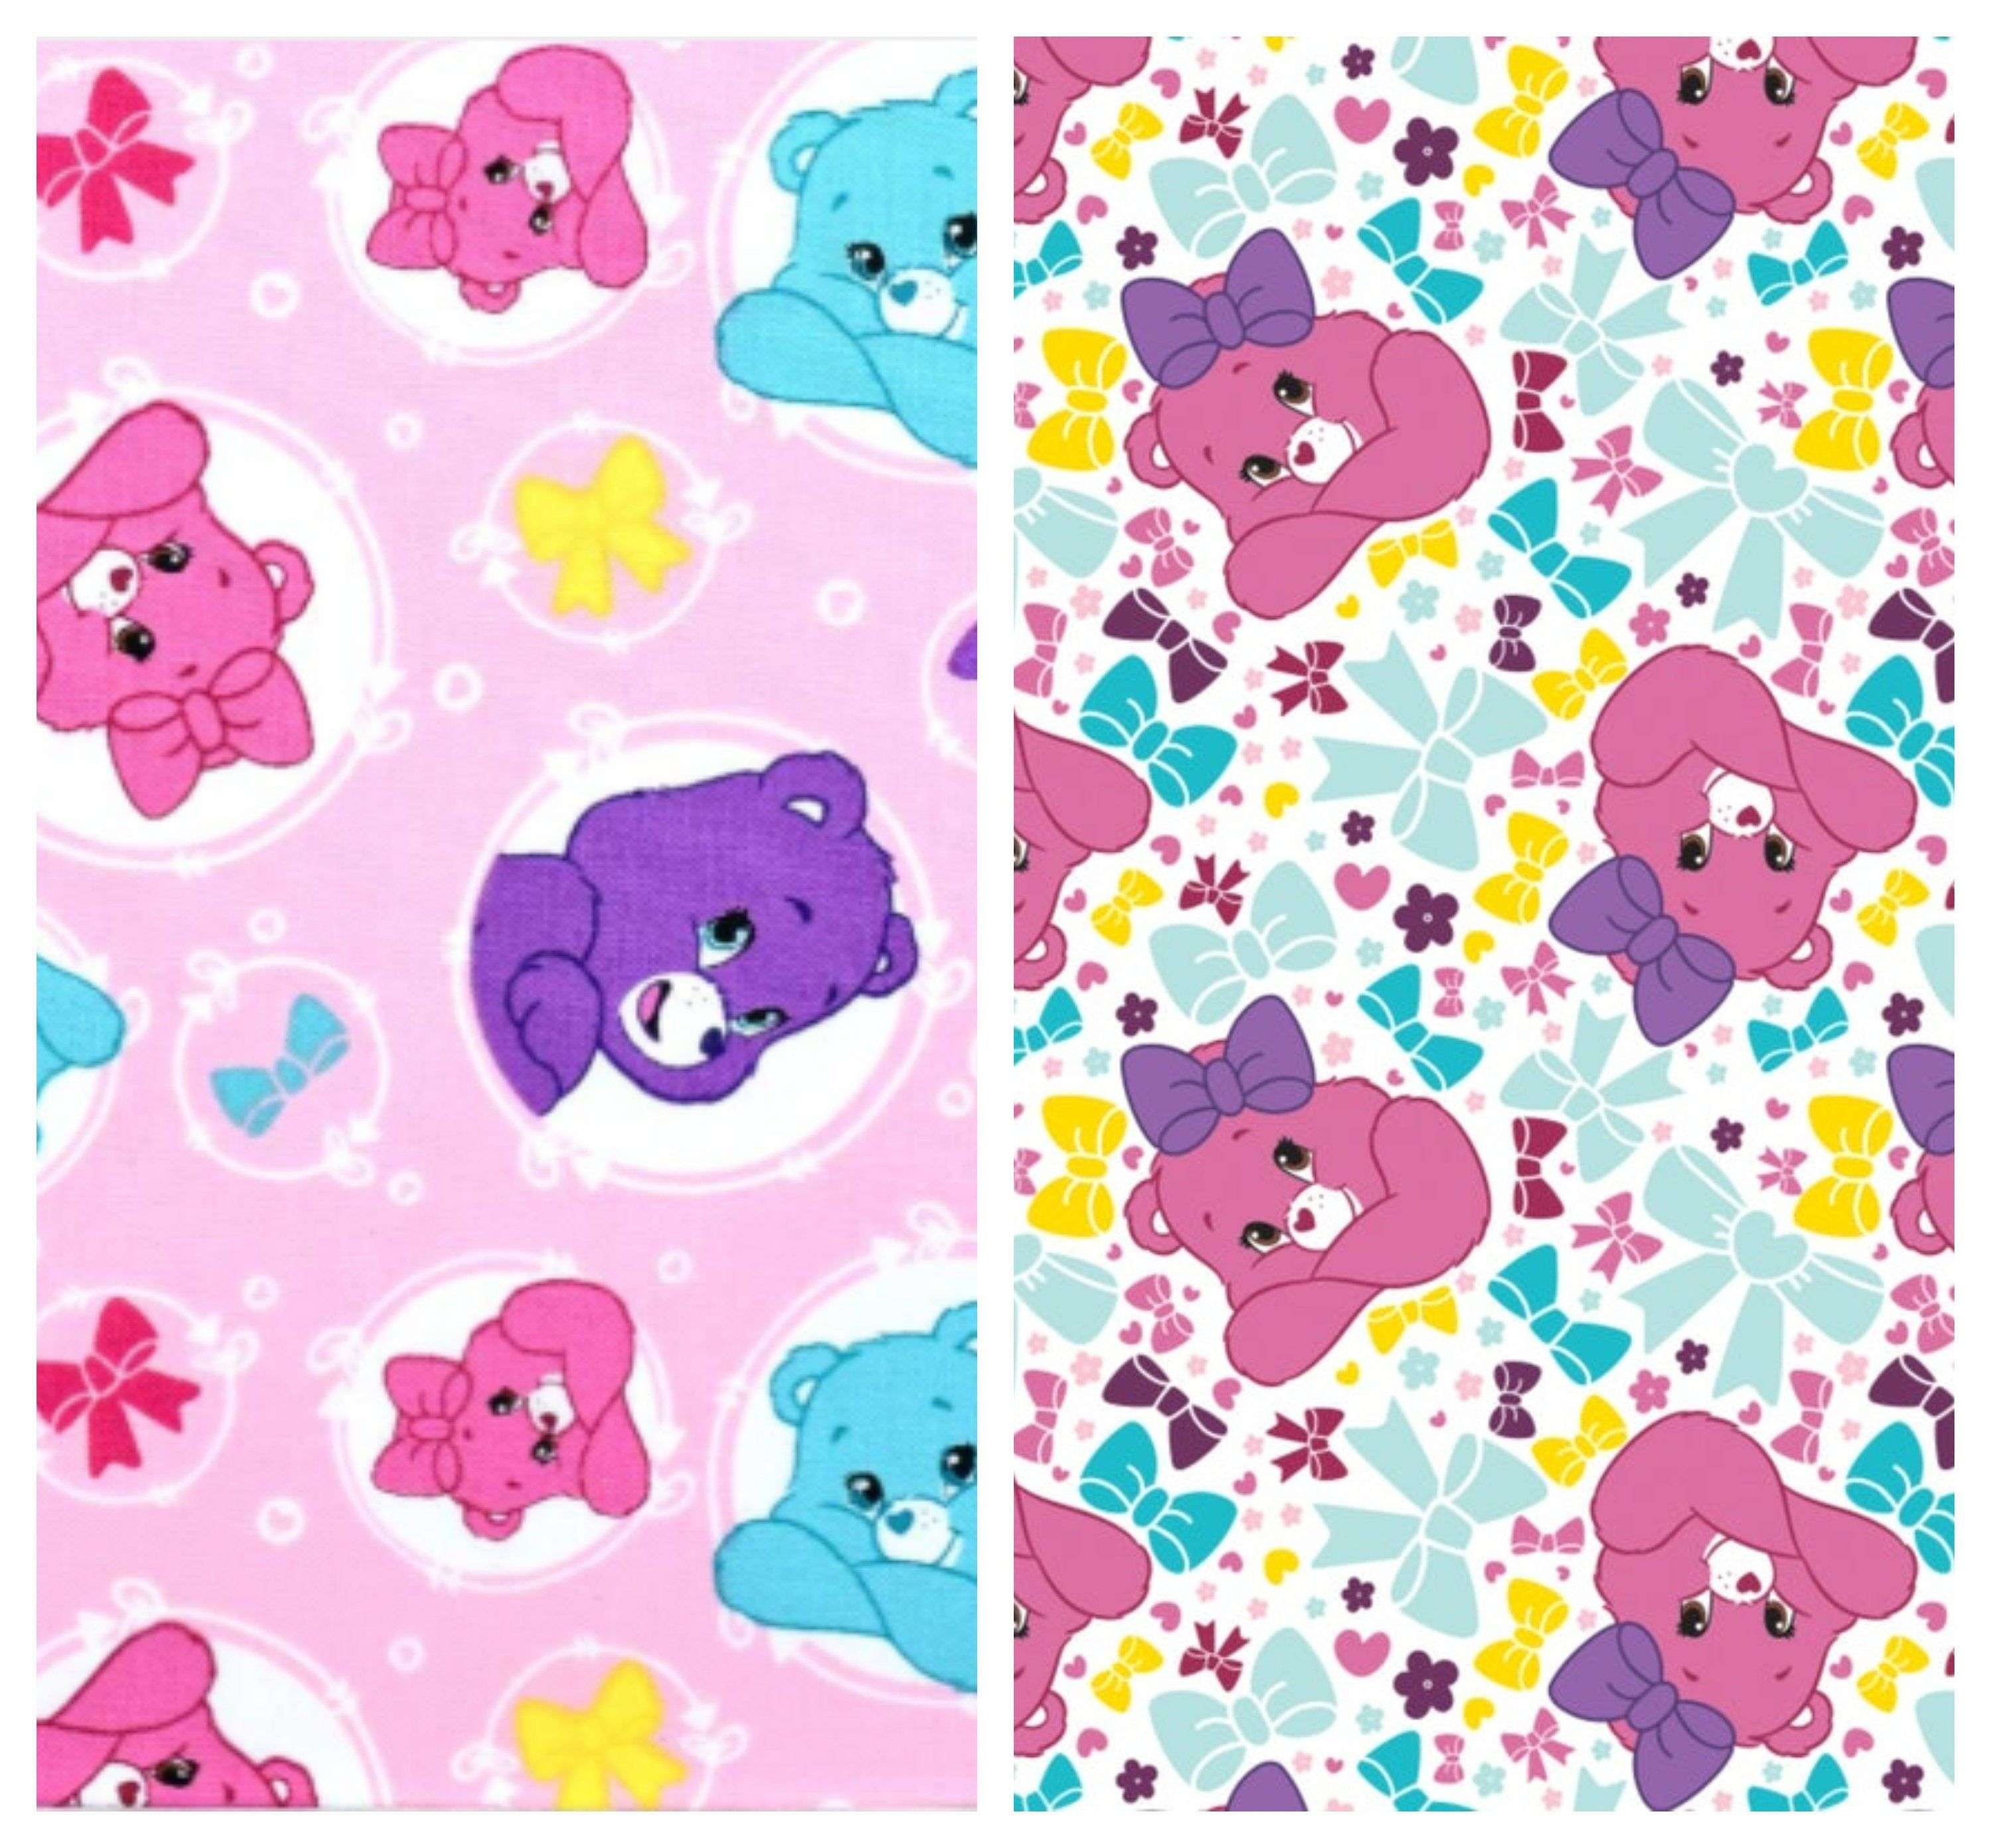 Care Bears Fabric by the Yard - Sparkle and Shine White Pretty Bow